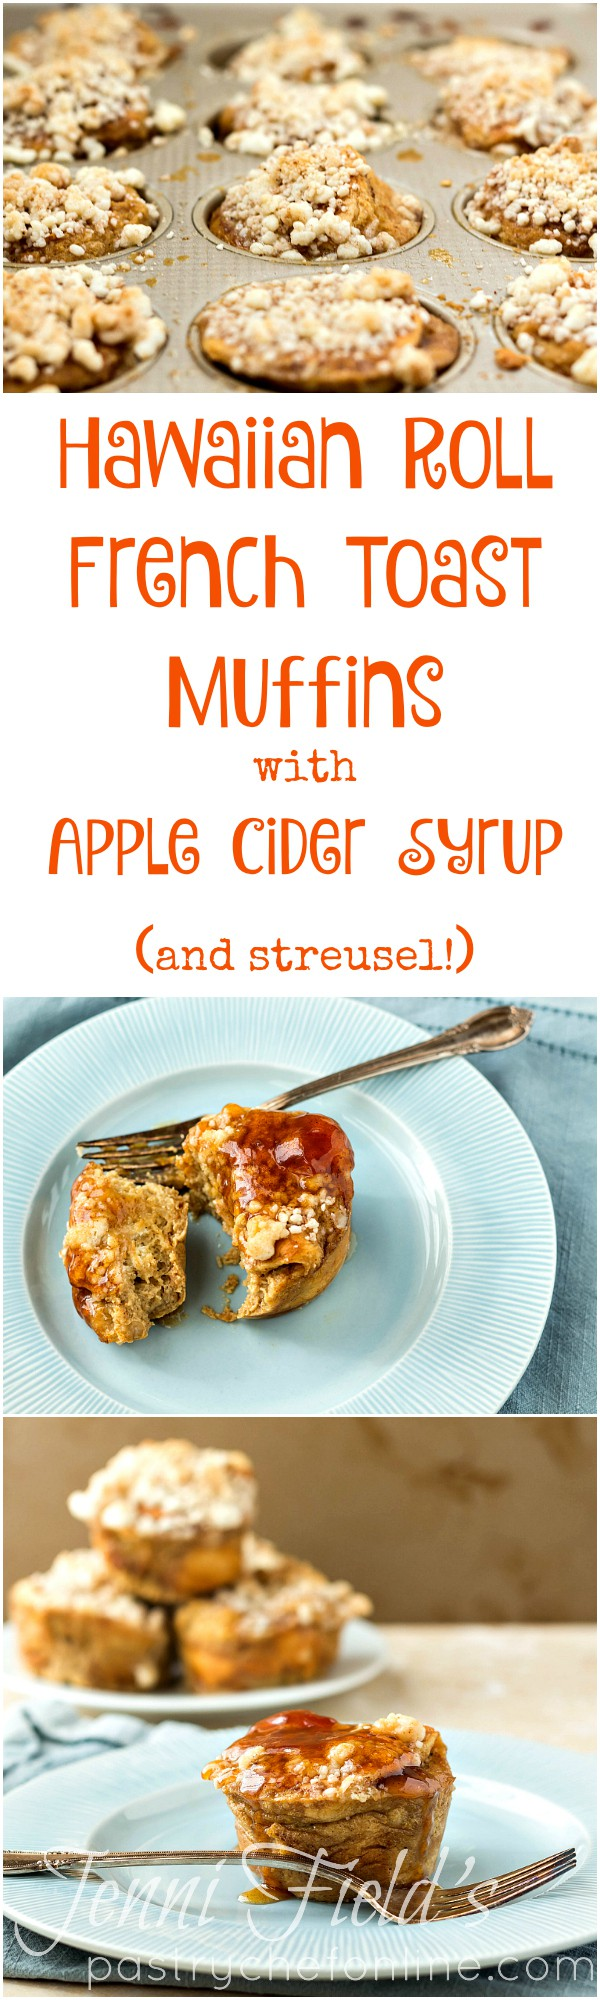 These Hawaiian Roll French Toast Muffins (or Individual Bread Puddings) are topped with buttery, crunchy streusel and get drenched in apple pie spiced apple cider syrup before serving. A decadent brunch treat or a delicious dessert you don't have to share!   pastrychefonline.com